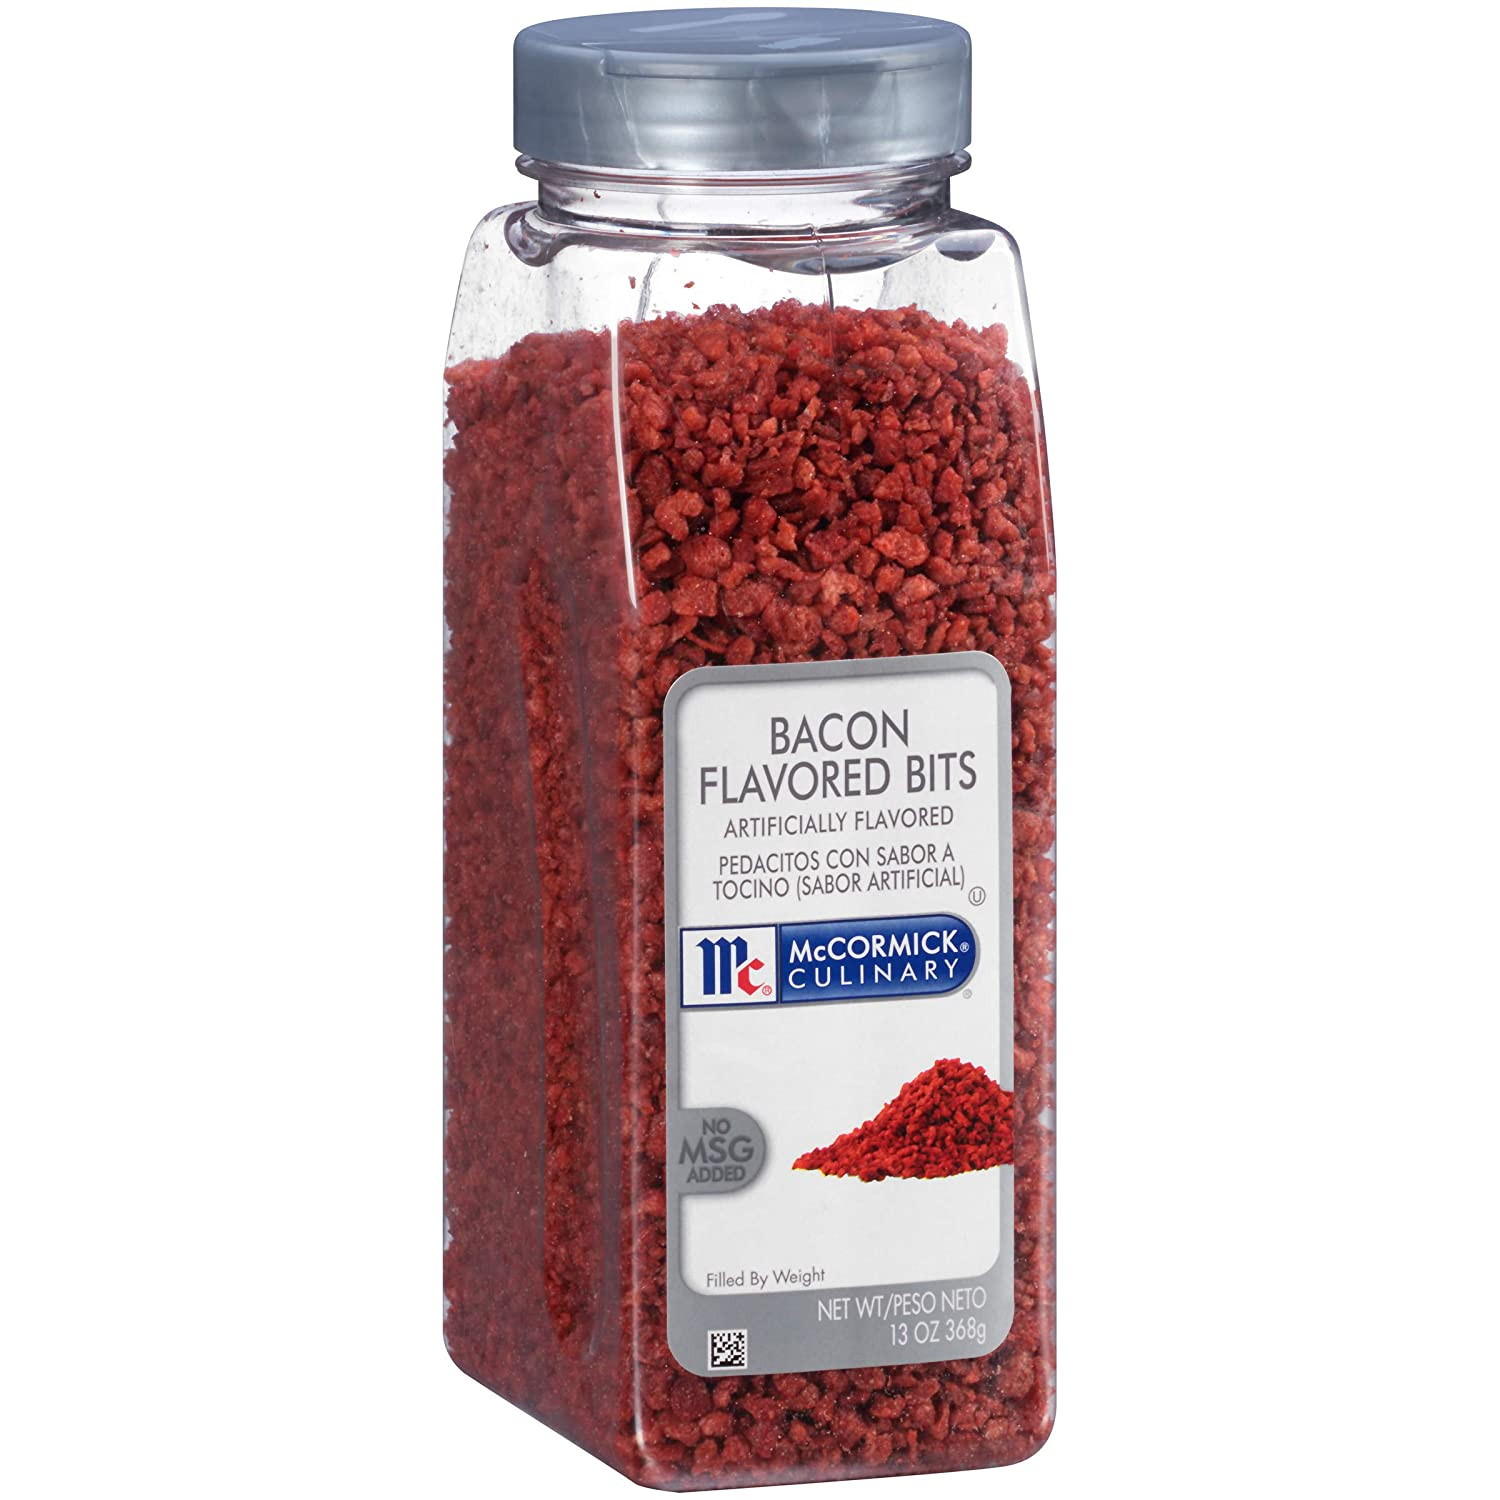 McCormick Culinary Bacon Flavored Bits, 13 oz